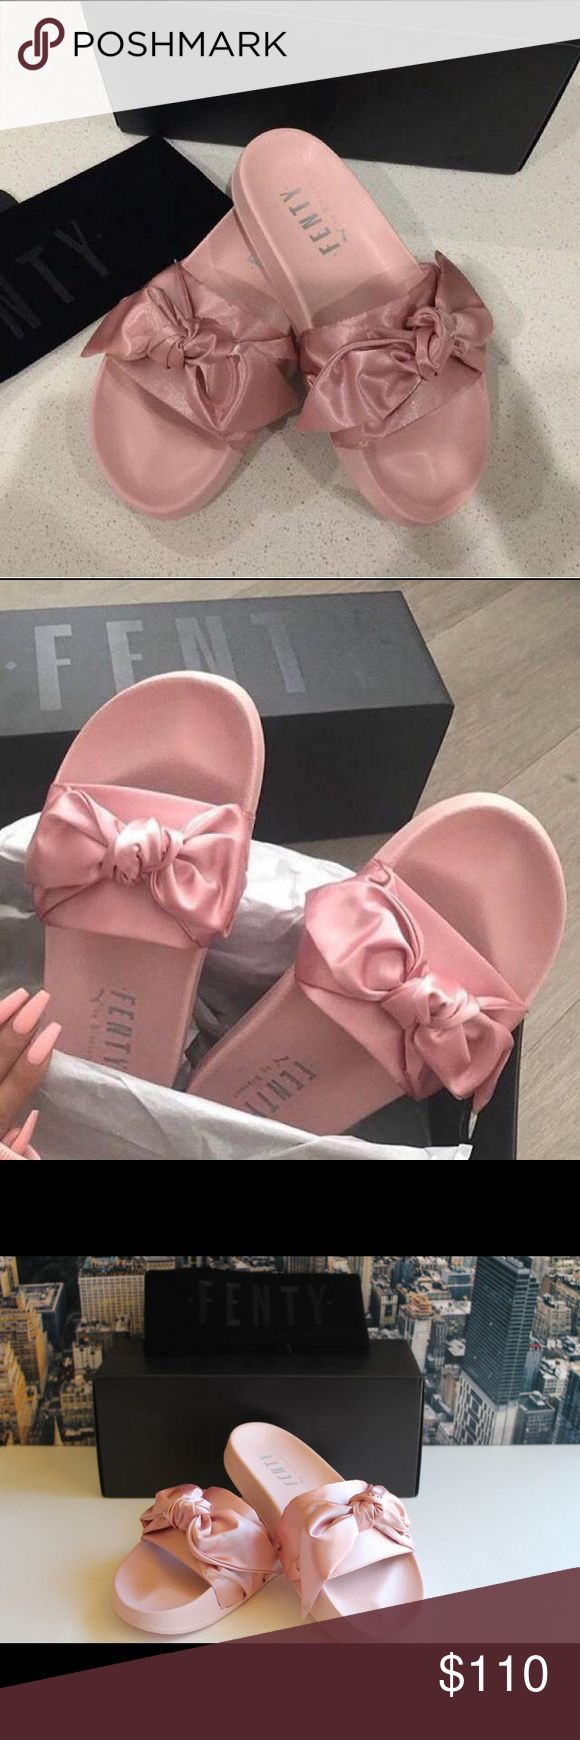 Rihanna Puma Fenty bow slides Steal the show like Bad Gal RiRi with these cool + covetable satin slide sandals designed by Rihanna for her Fenty label by Puma. Cushy, molded pool slides elevated to a whole new level with a satin banded strap across arch, accented with a knotted bow for a modern take on femme that we can't get enough of. Finished with a cushioned rubber sole. Brand new in box Puma Shoes Slippers